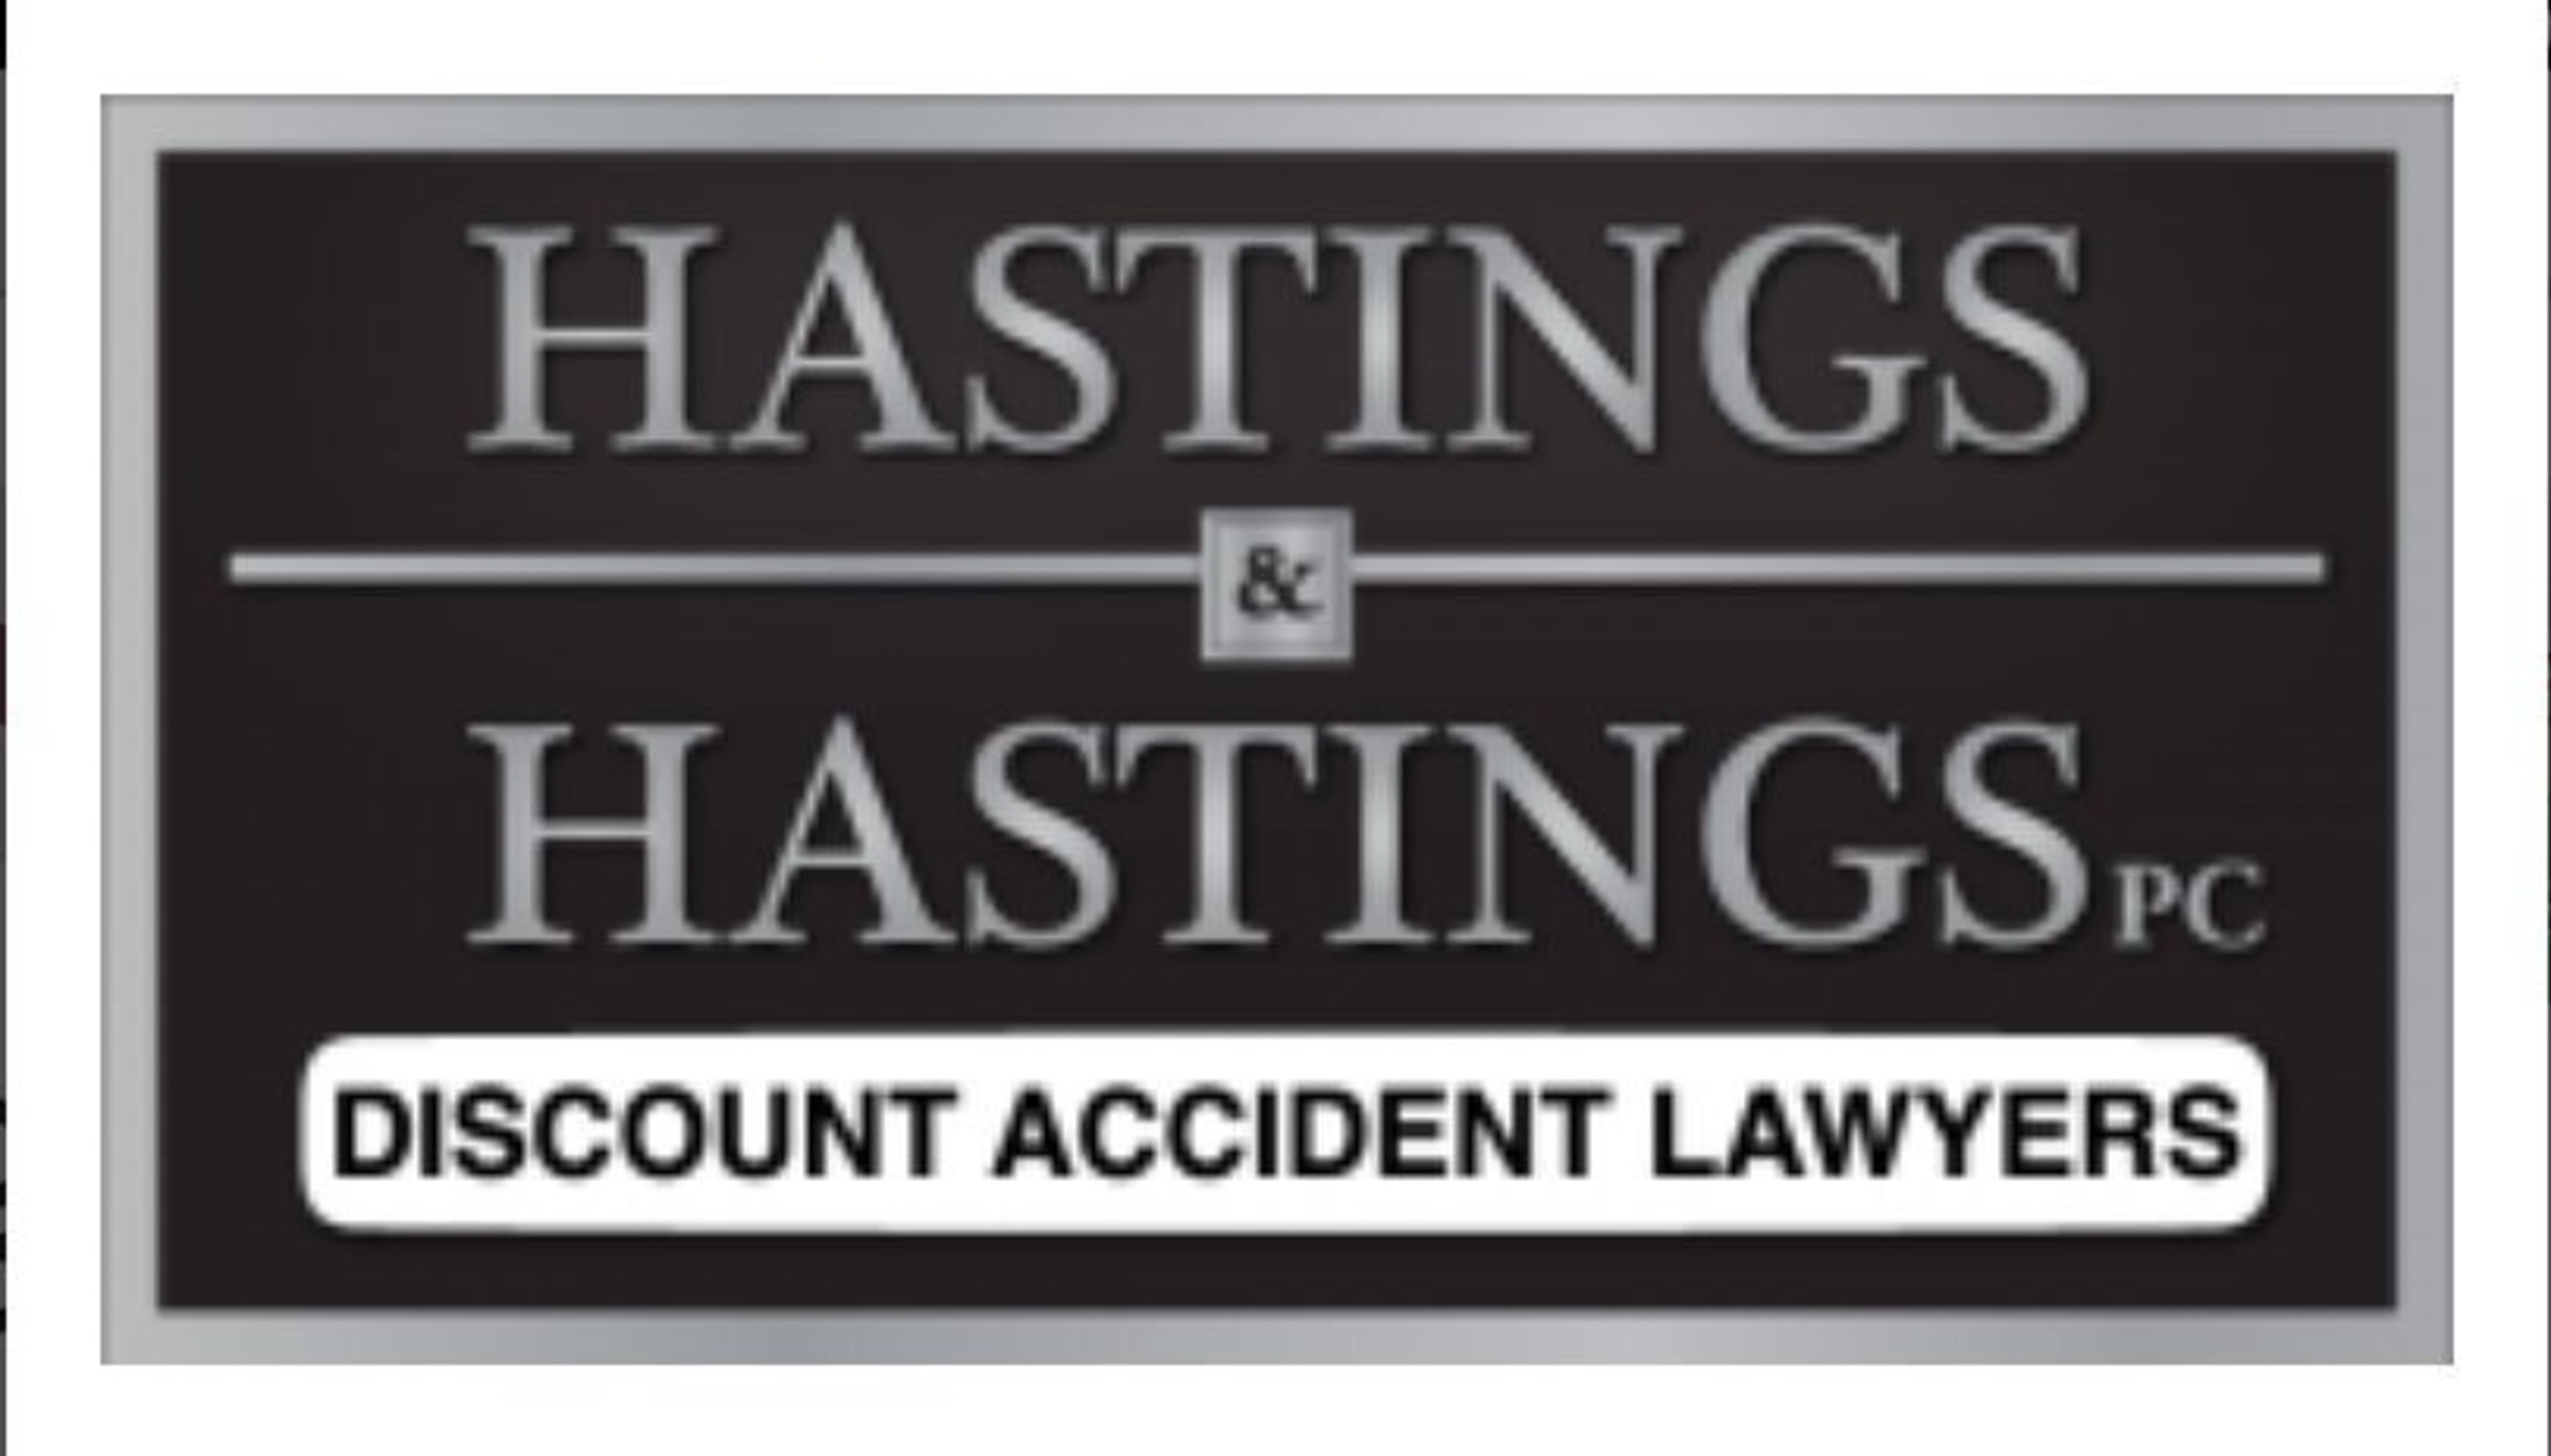 Hastings & Hastings Offers Advice to Accident Victims